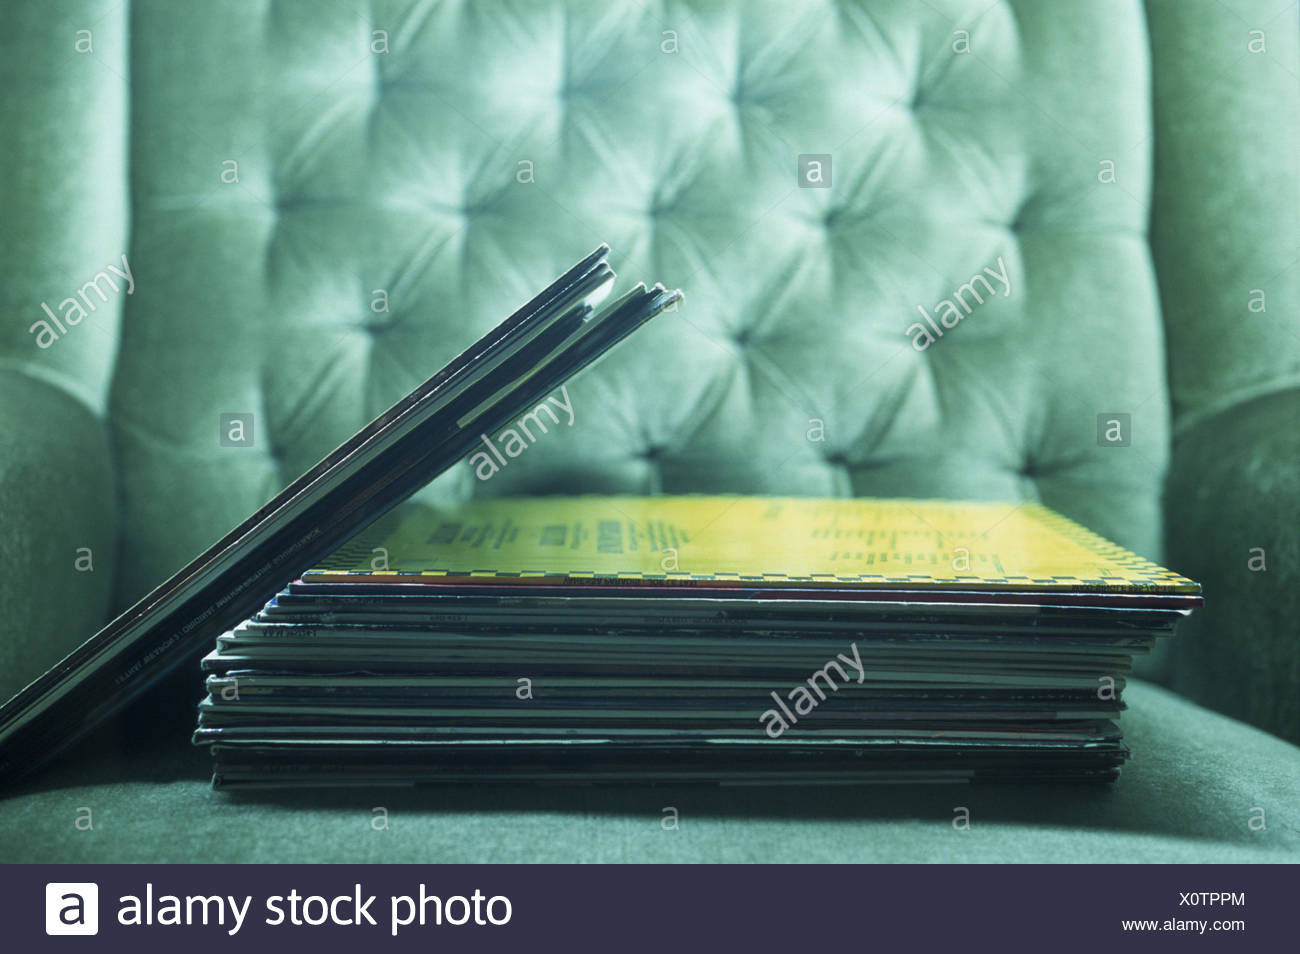 Armchair, long-playing records, upholstered chairs, LP, LP's, records, vinyl, cover, disk cover, disk covers, dust covers, product photography, Still life - Stock Image